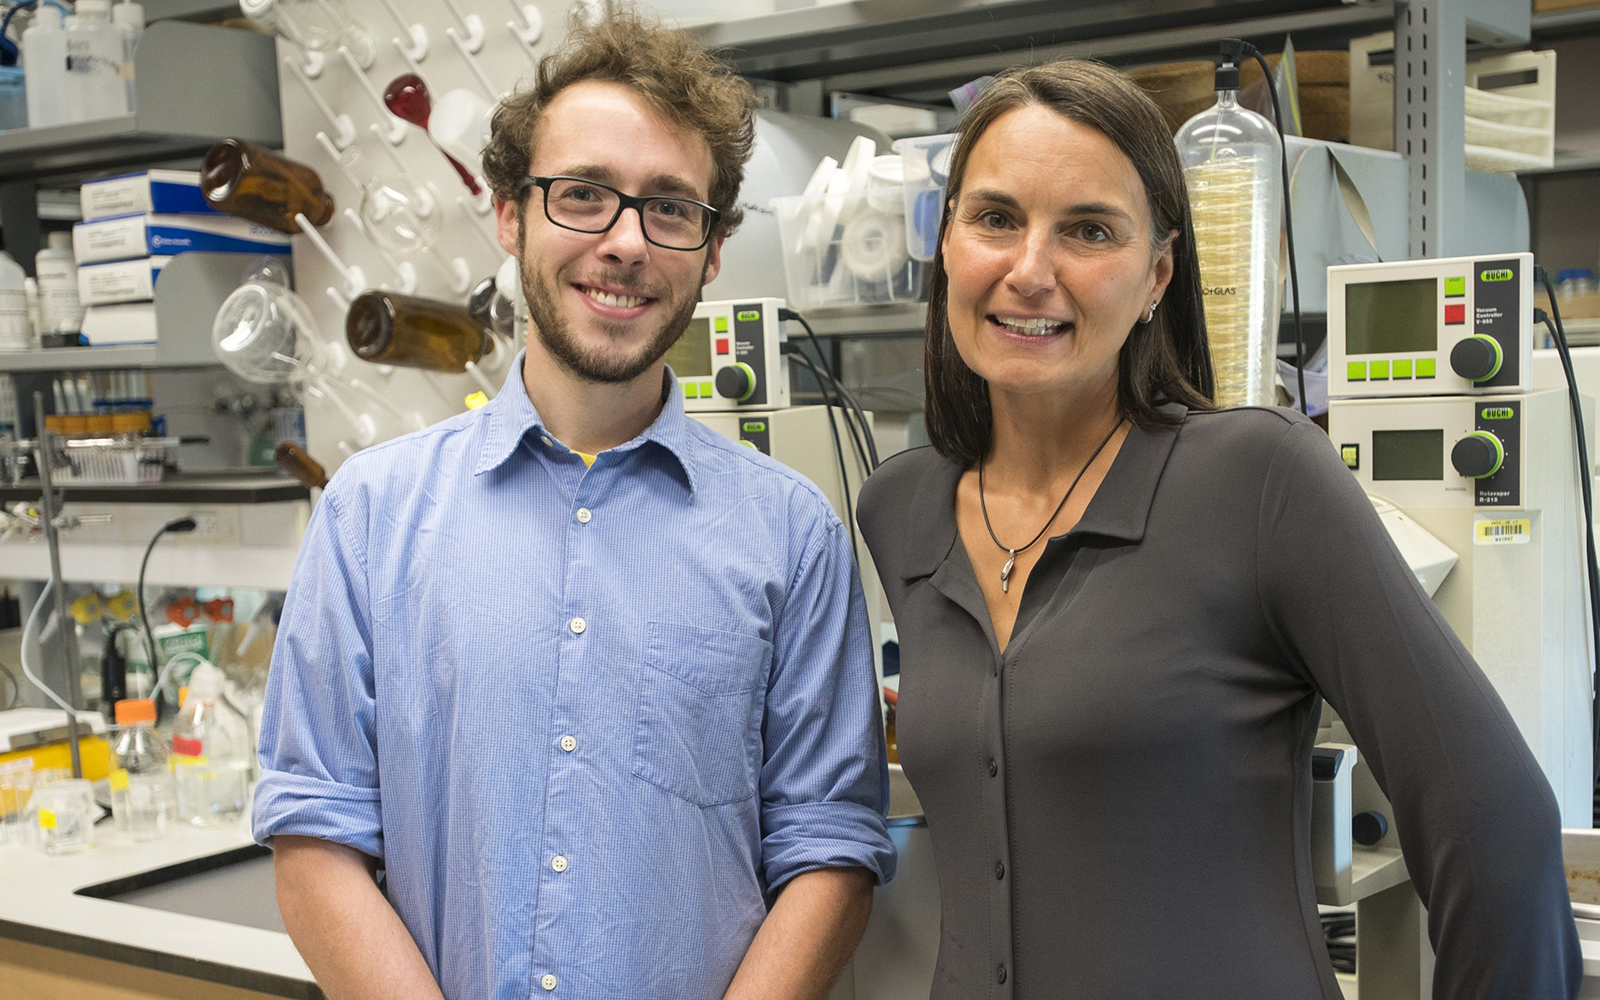 UConn scientists marine geochemist Penny Vlahos, right, and graduate assistant Joe Warren are commercializing a new technology they developed to more easily measure contaminants in water. (Sean Flynn/UConn Photo)